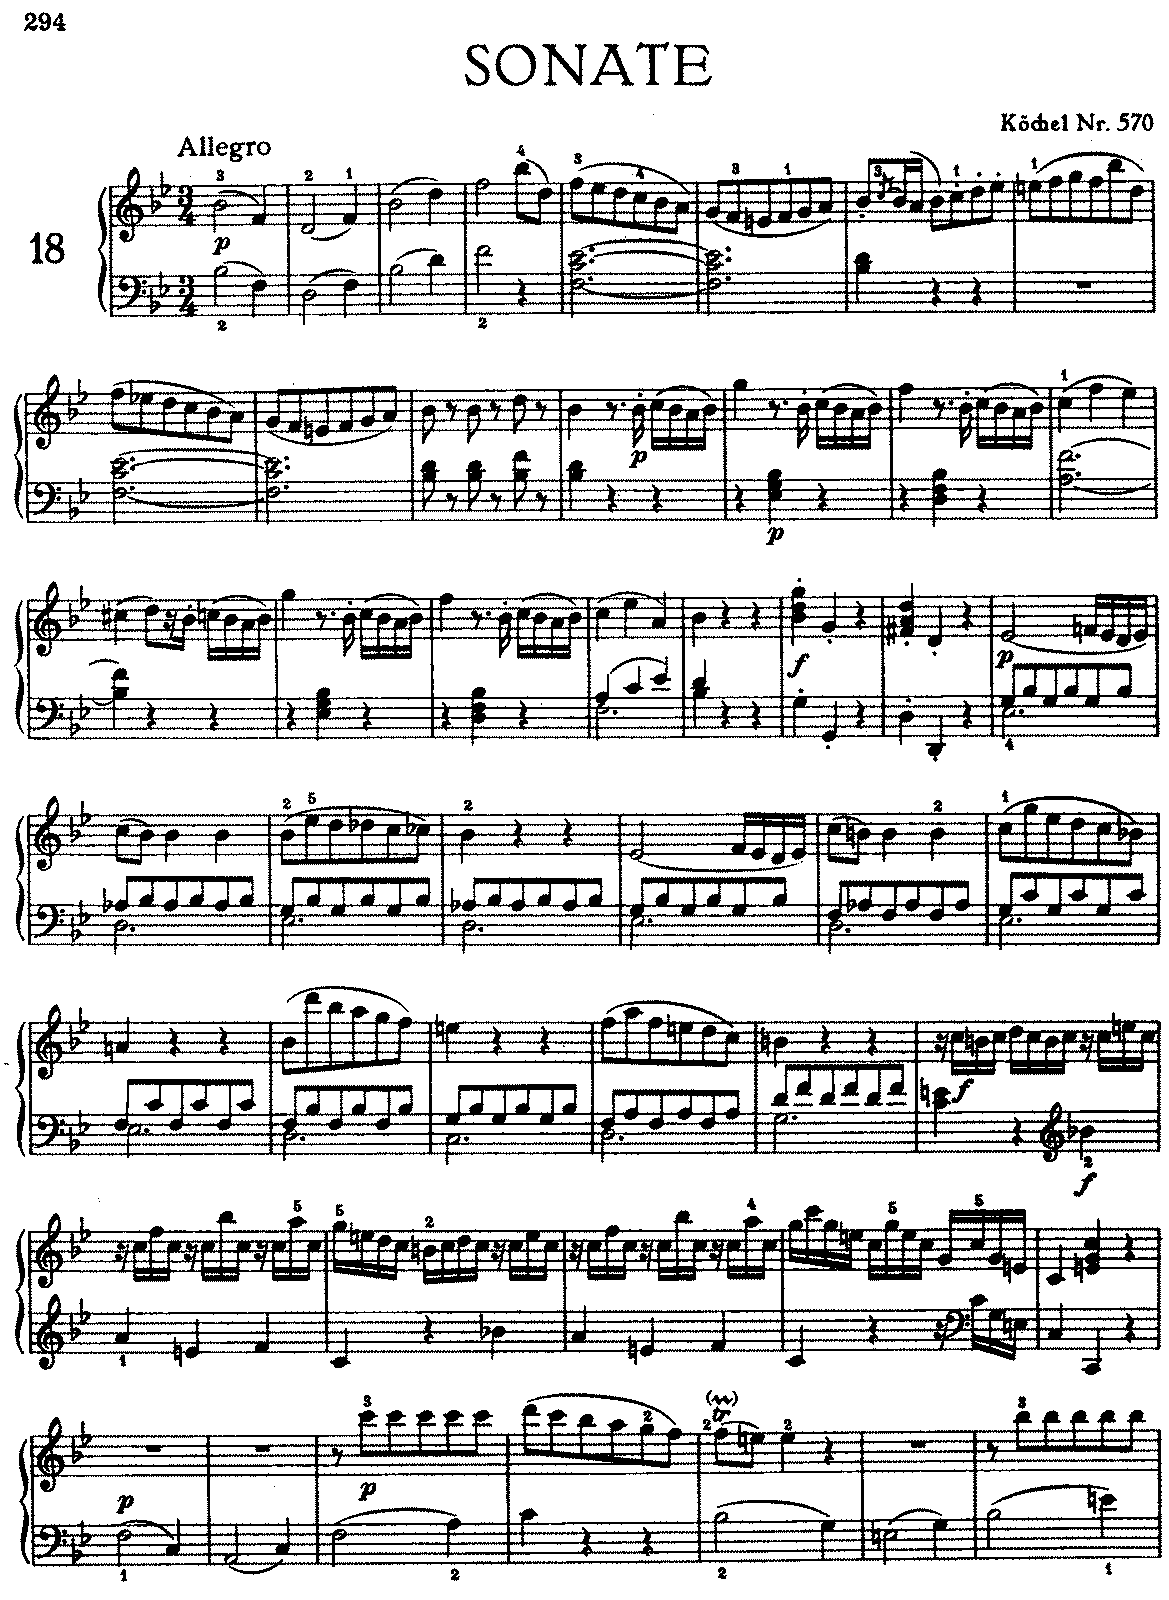 mozart s piano sonata in b flat major k 570 Mozart`s piano sonata no 10 in c major, movement ii, andante cantabile performed by johannes v schmidt piano sonata no 17 in b-flat major (k 570.